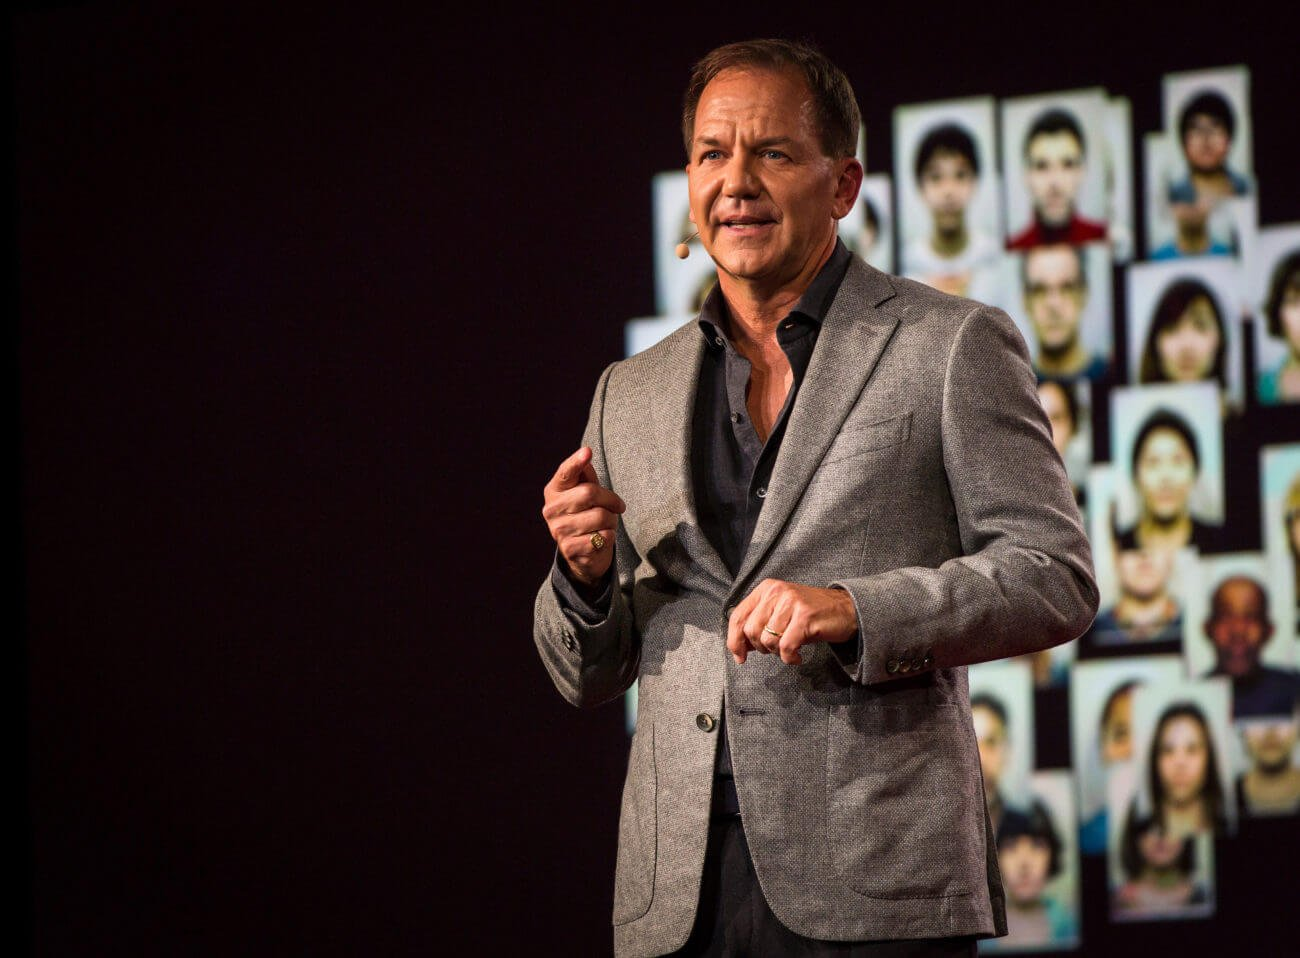 Billionaire Paul Tudor Jones Wants To Acquire His Story Straight On Bitcoin